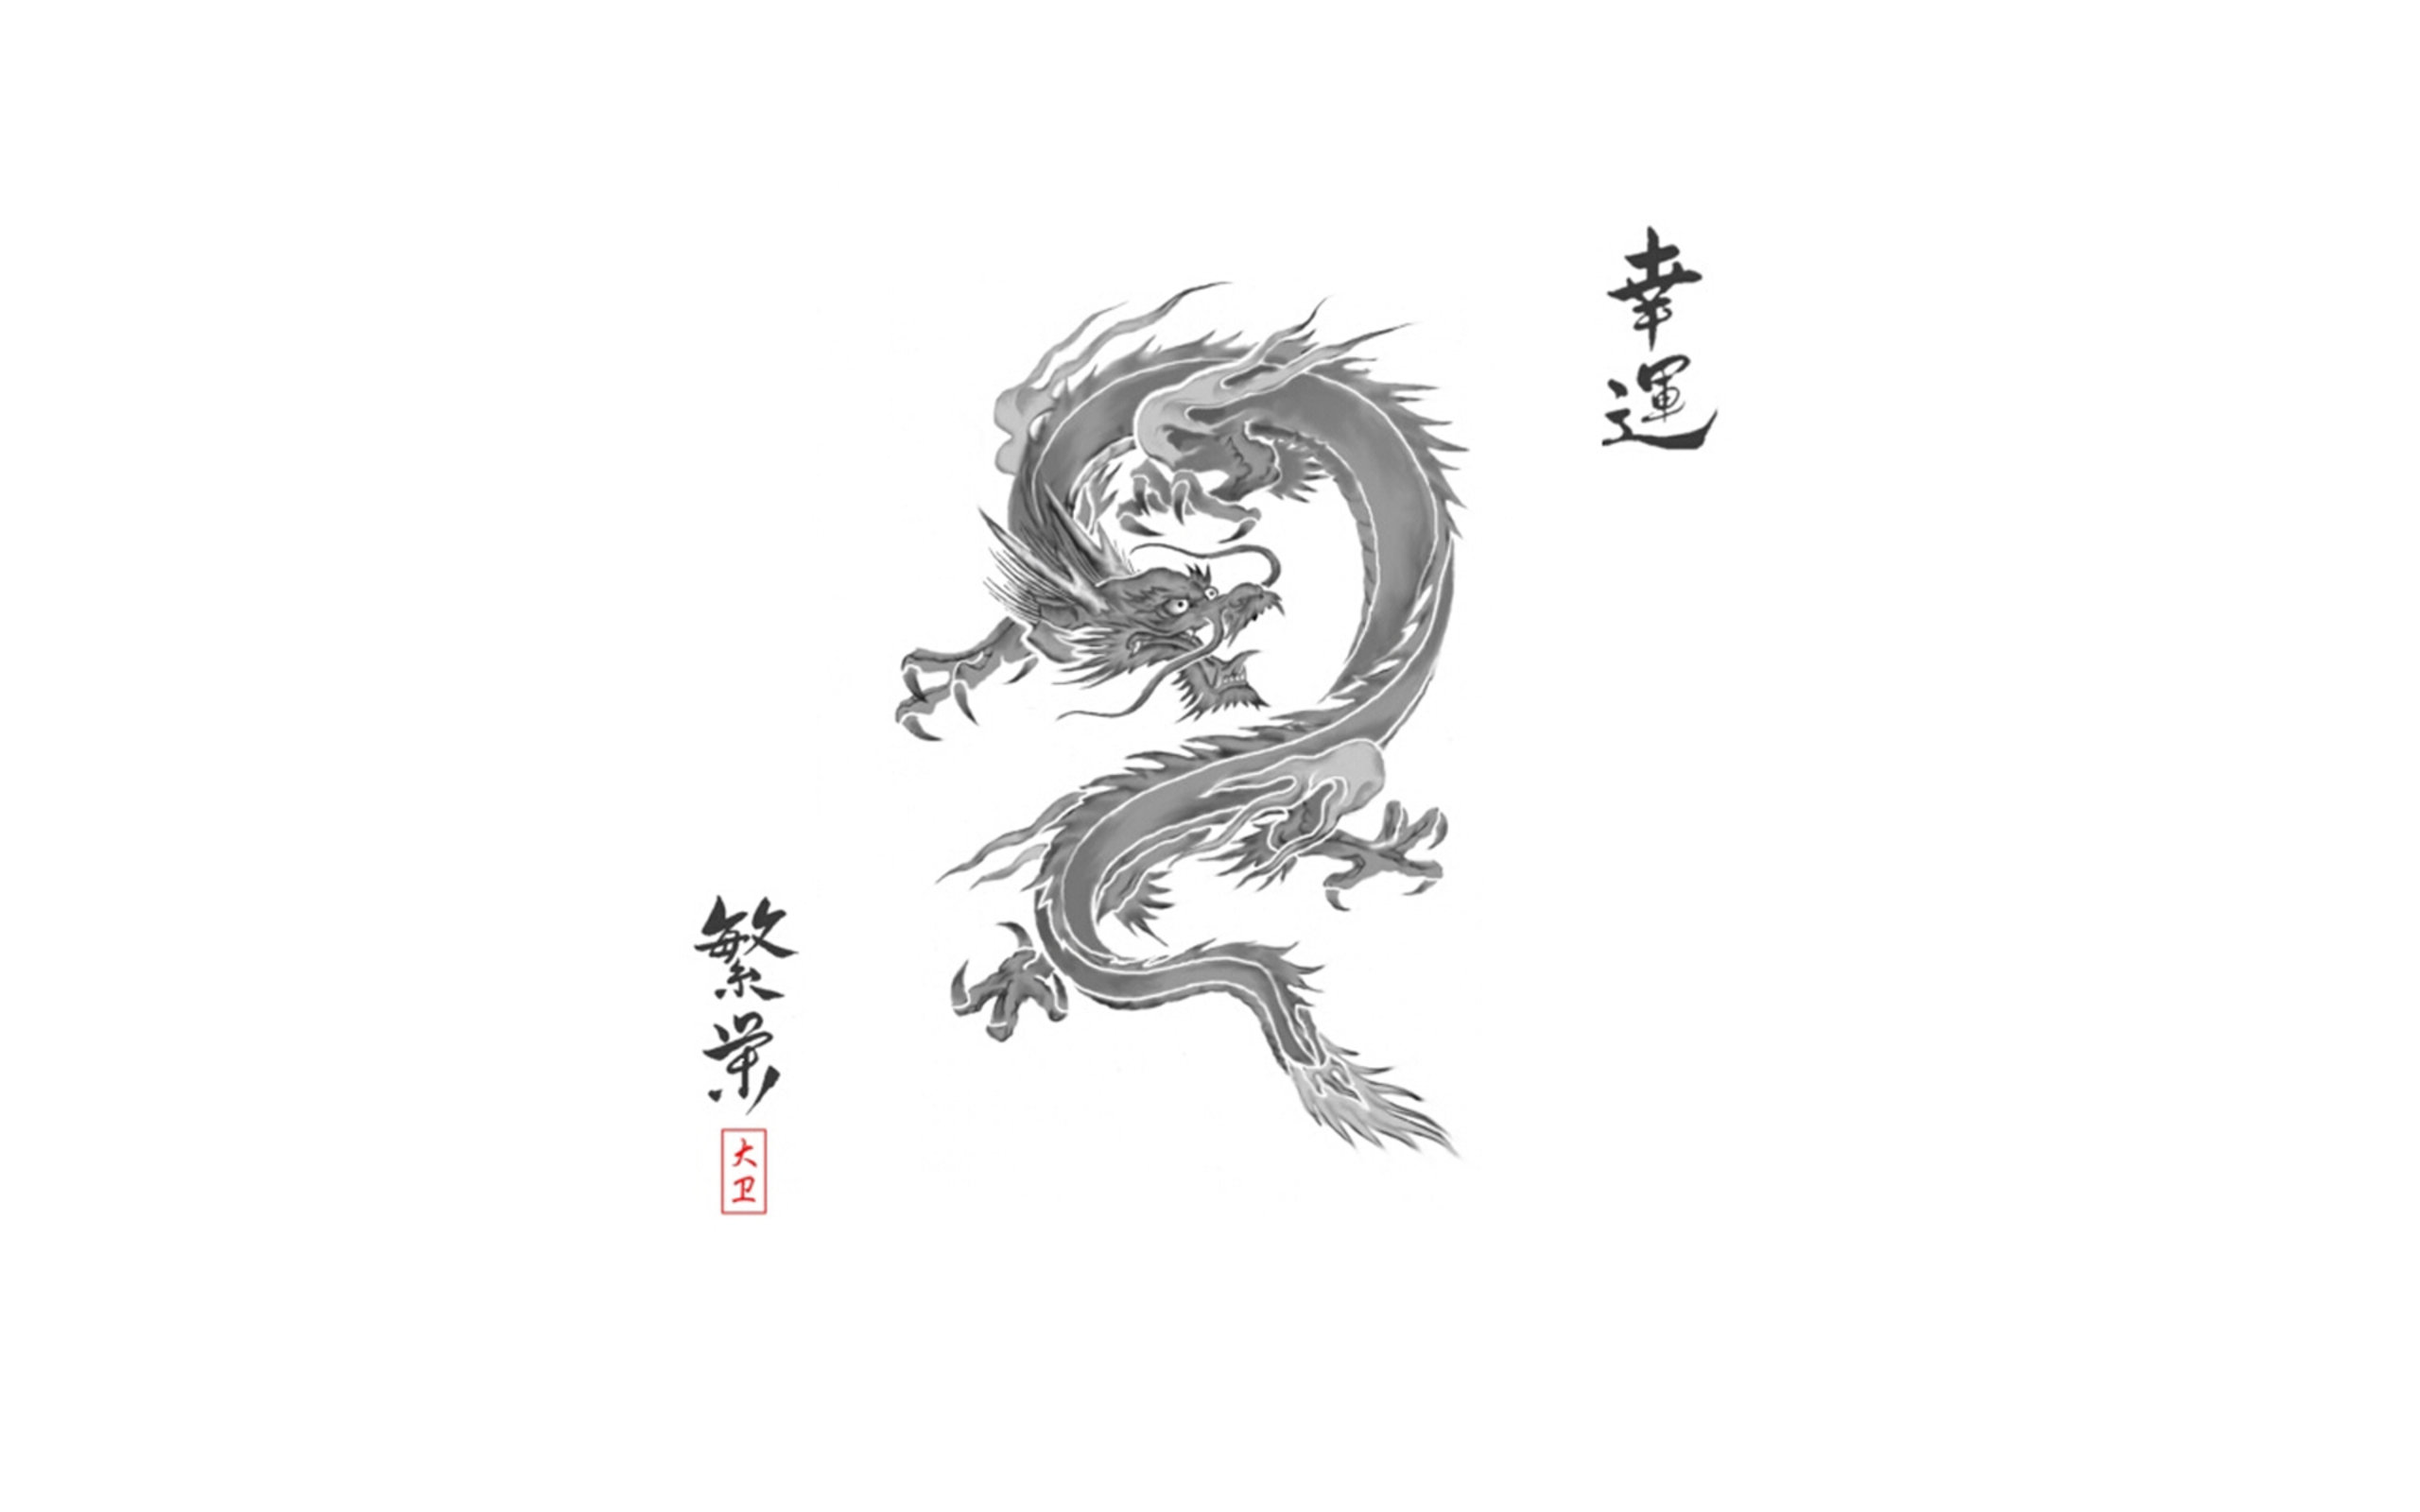 Chinese Dragon Wallpapers Hd For Desktop Backgrounds